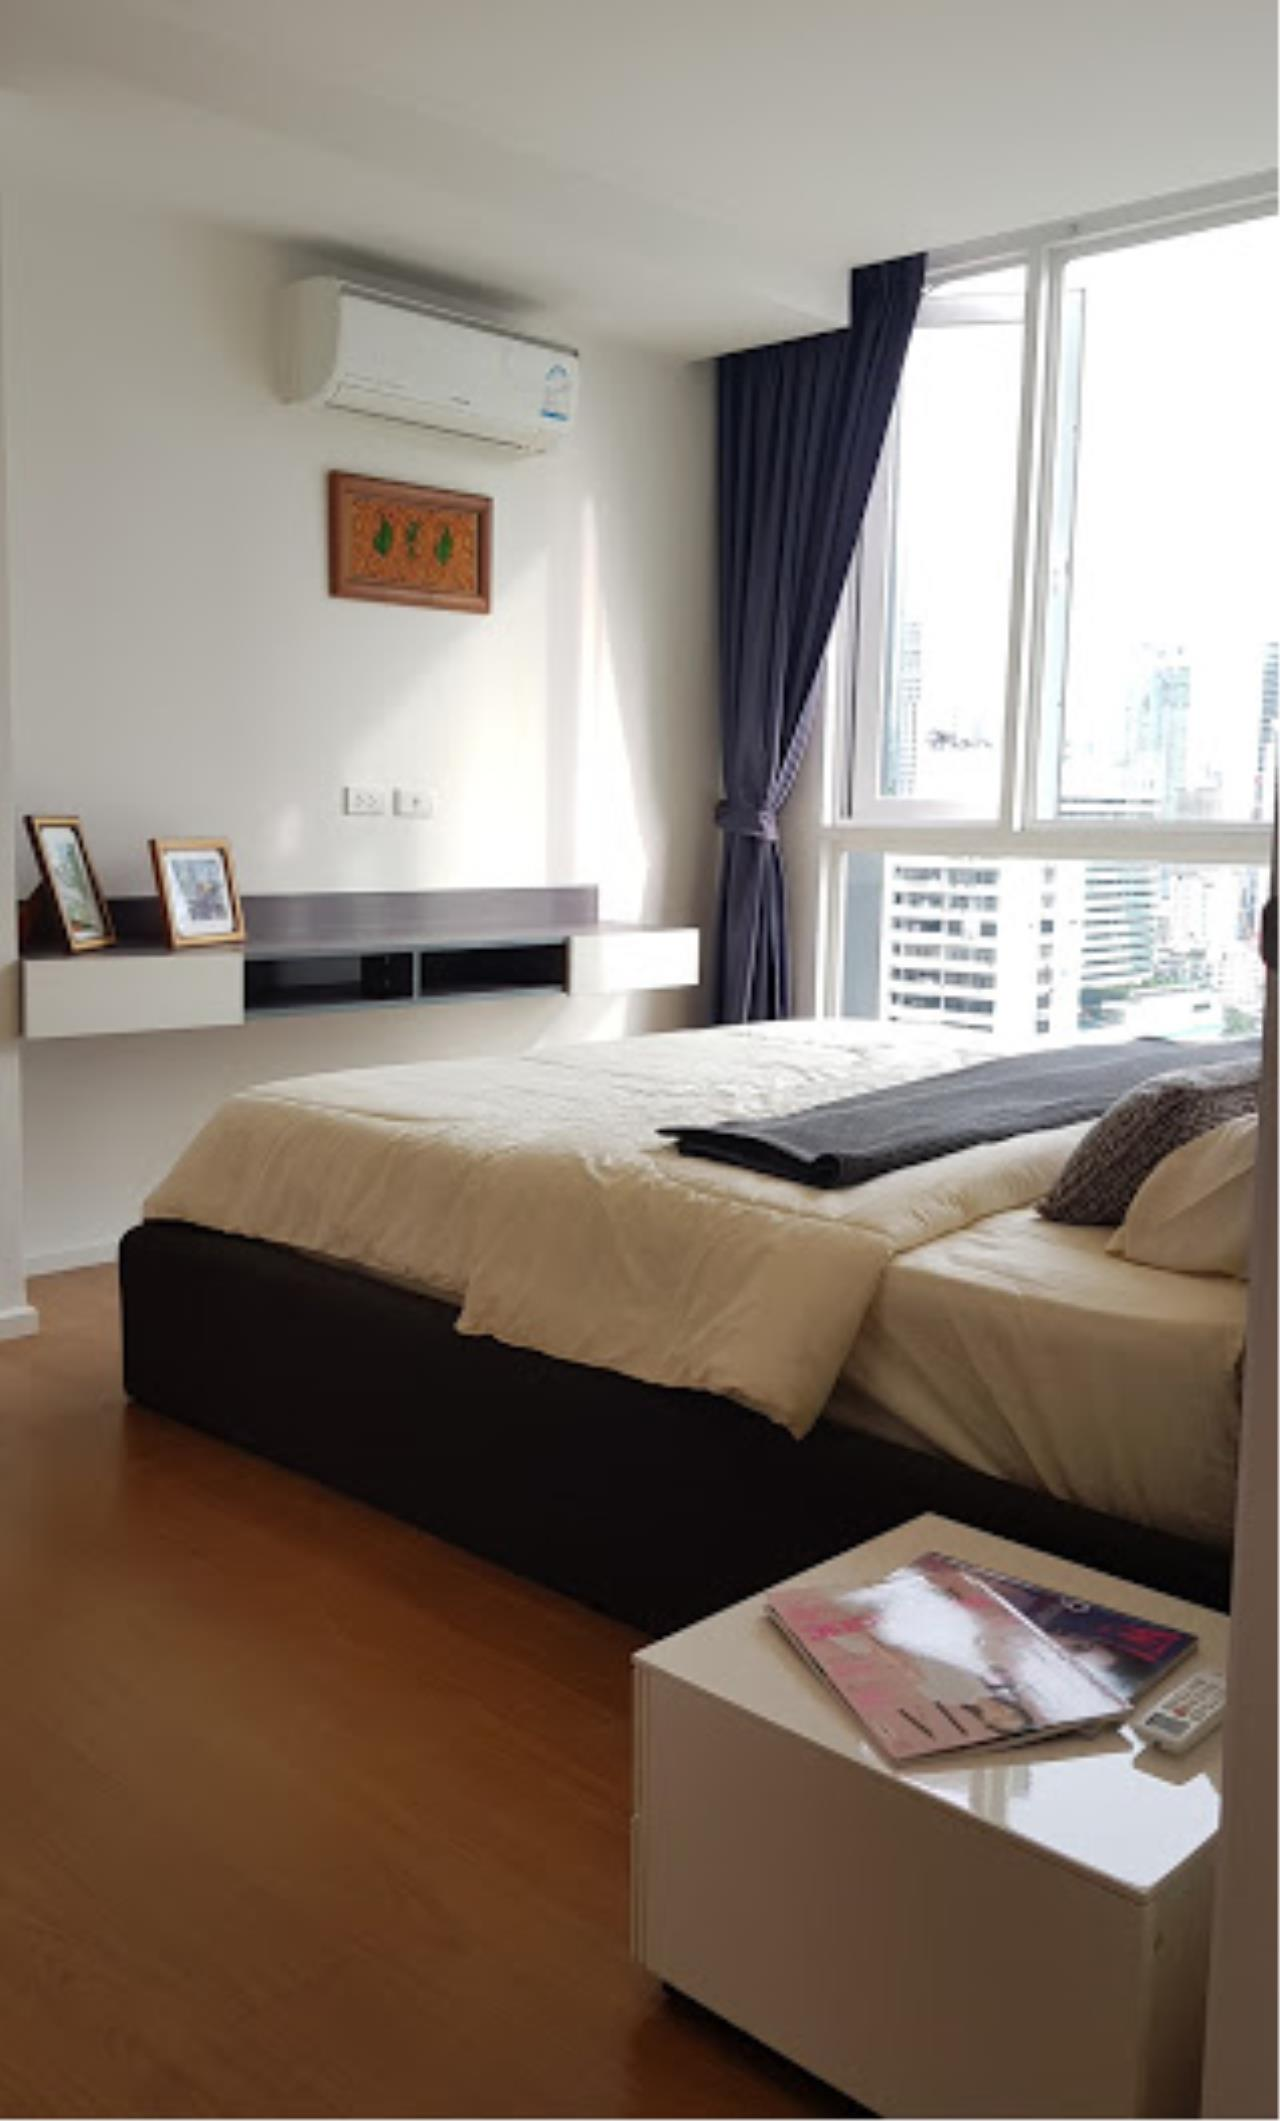 Quality Life Property Agency's S A L E  ! 15 Sukhumvit residence | 1 Bed 1 Bath | 59.29 Sq. M. 9